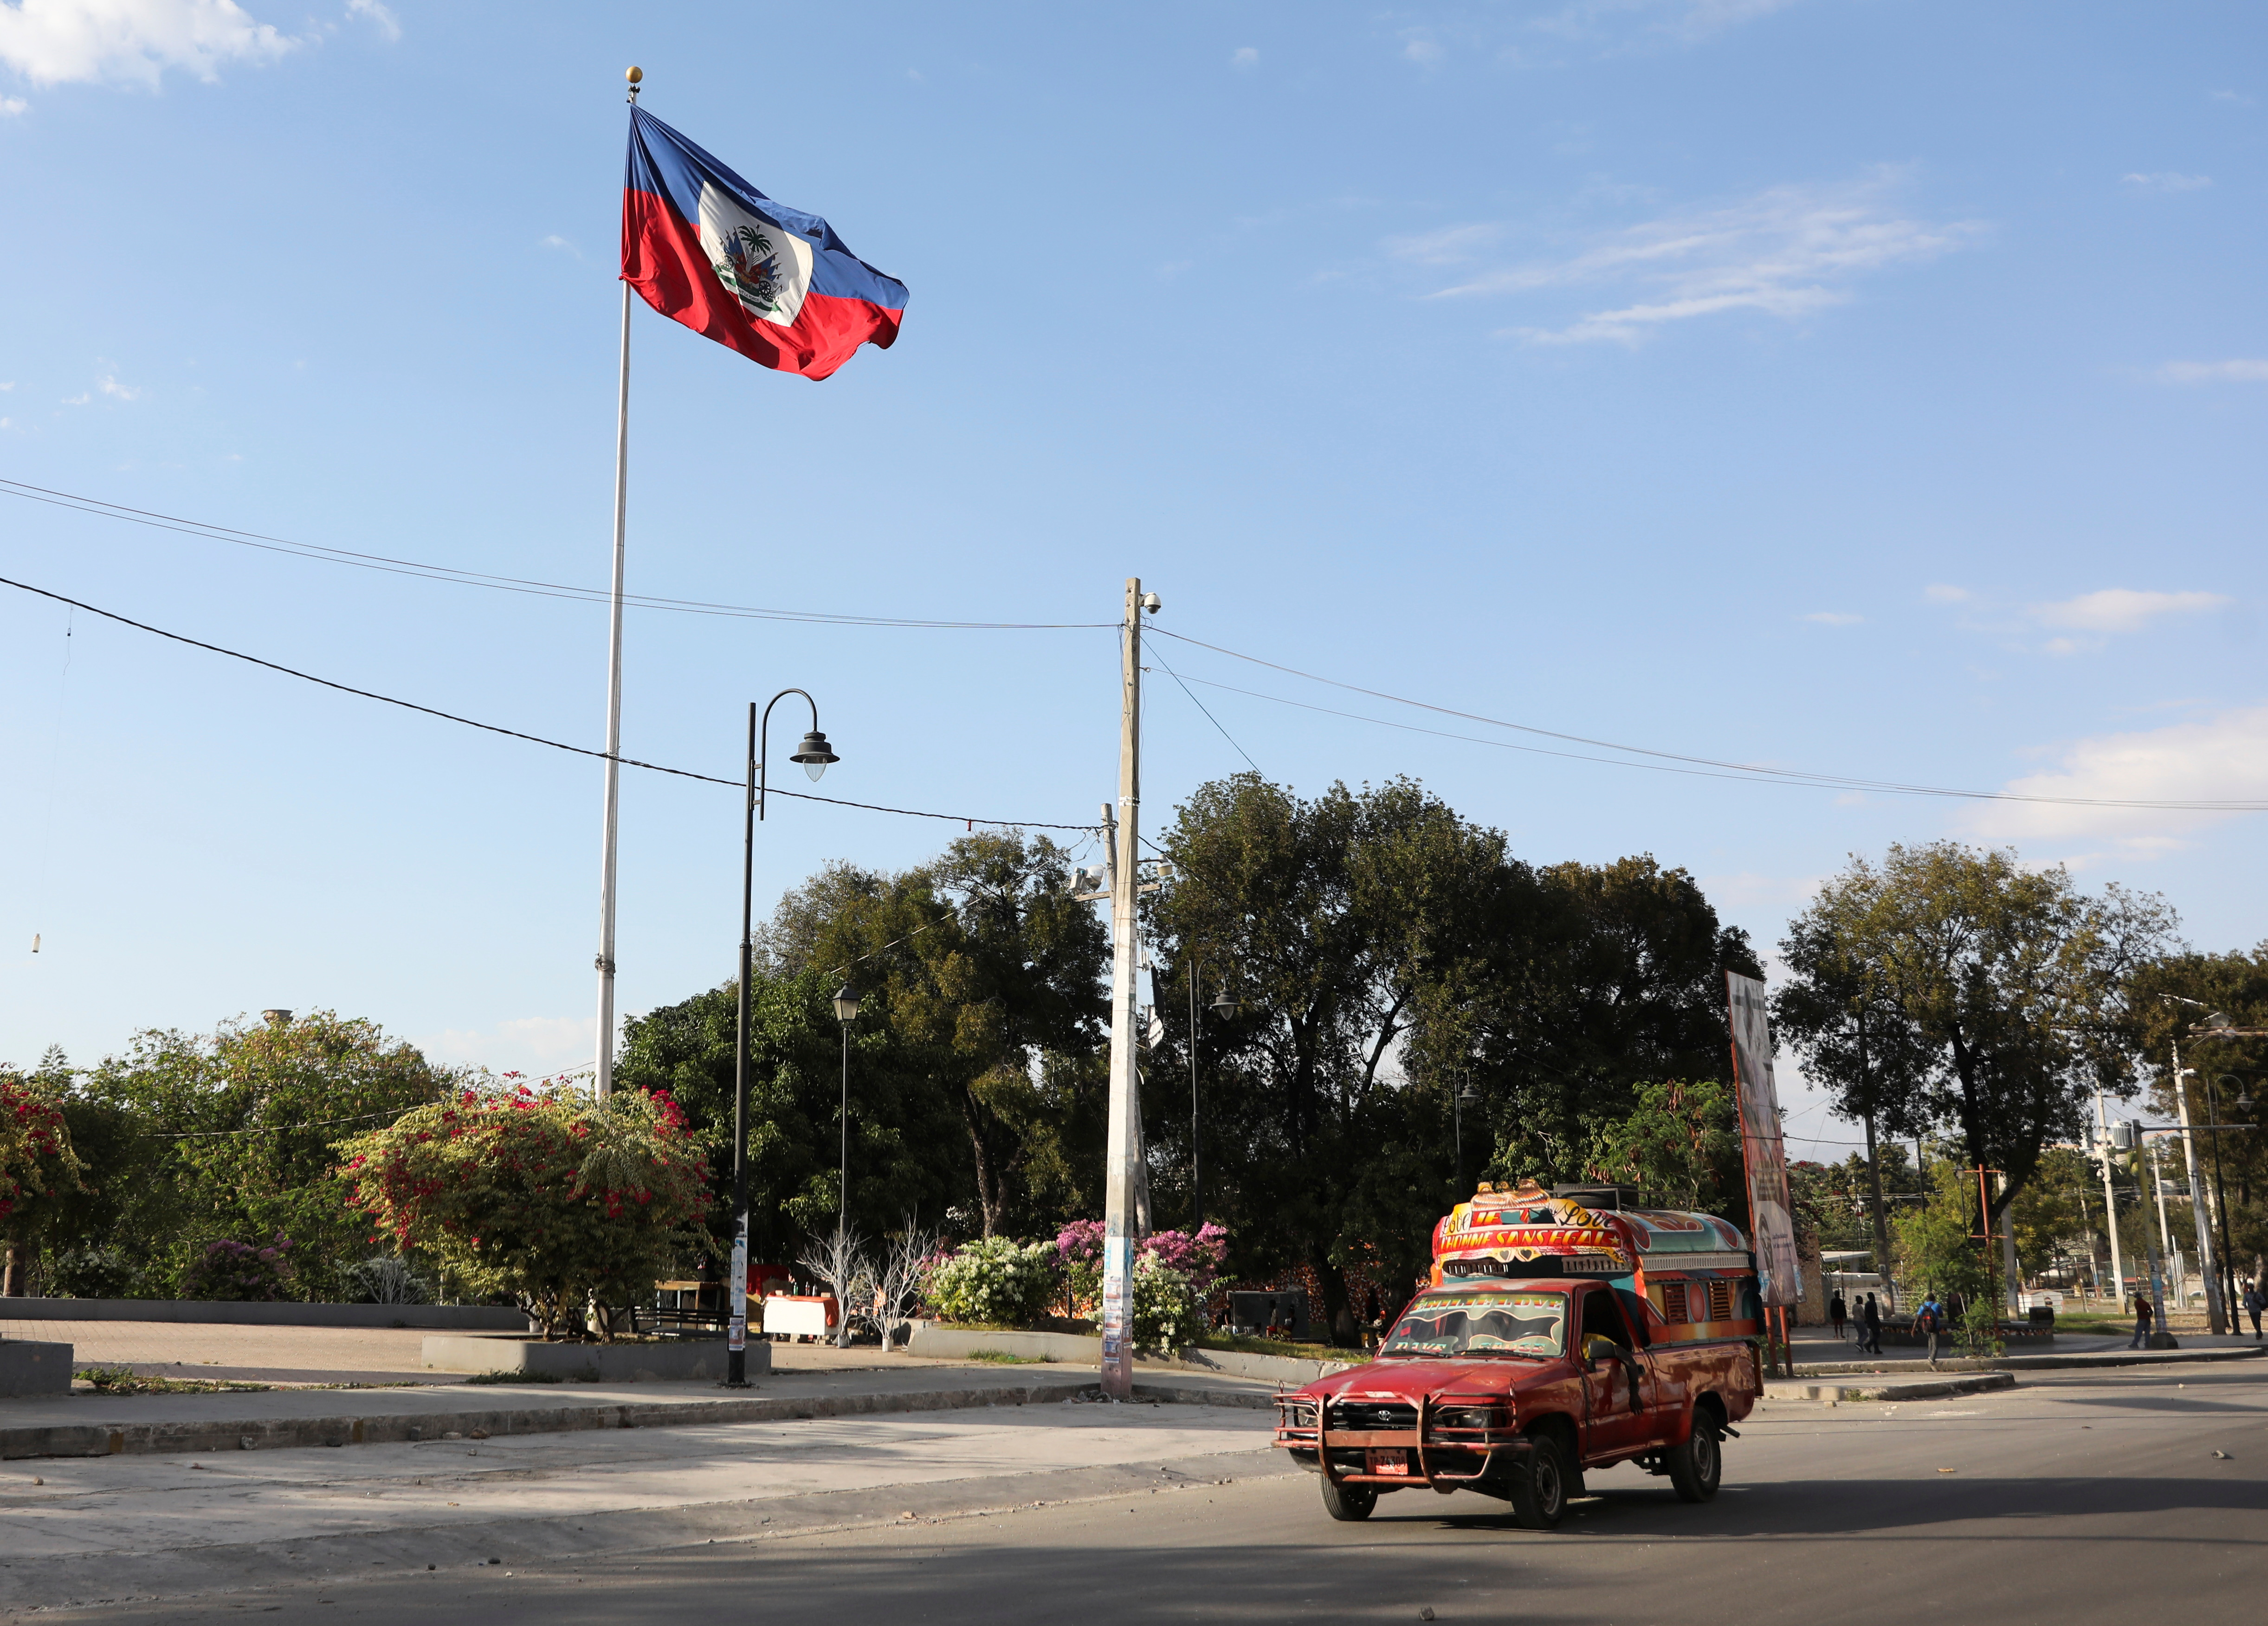 A Tap-Tap (a collective transportation vehicle) drives past Haiti's national flag, in Port-au-Prince, Haiti February 9, 2021. REUTERS/Valerie Baeriswyl